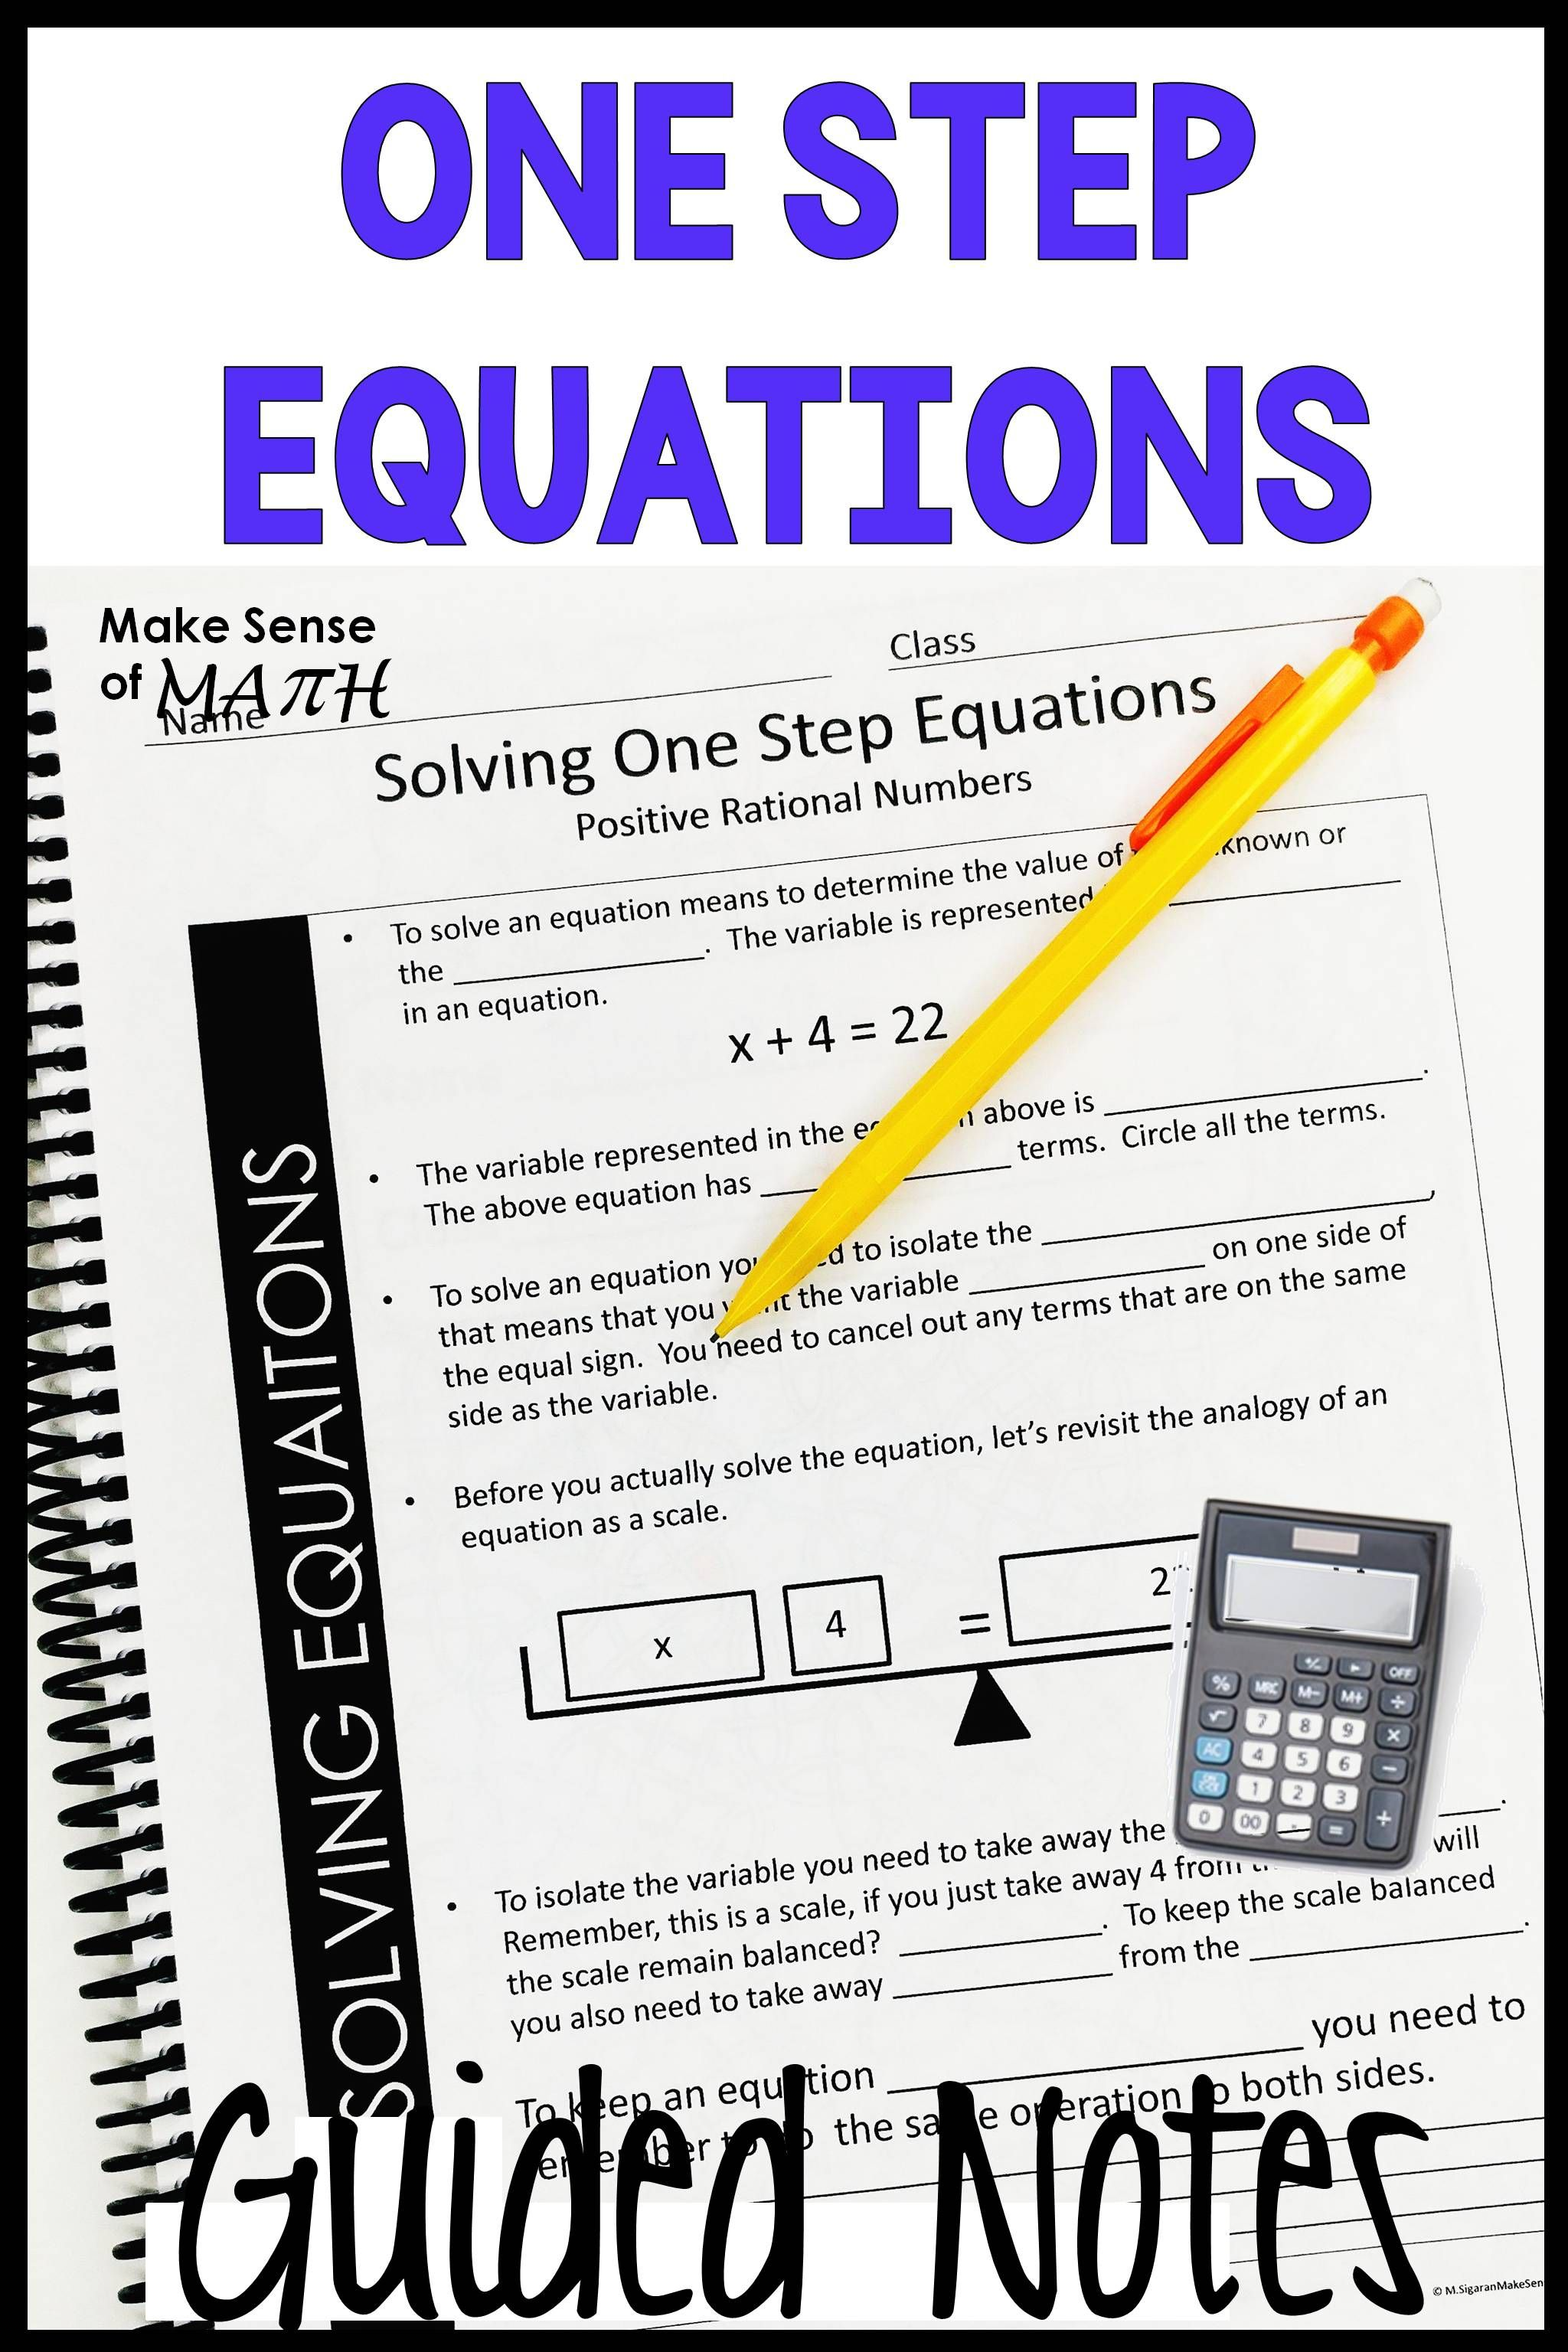 Solving One Step Equations Guided Notes